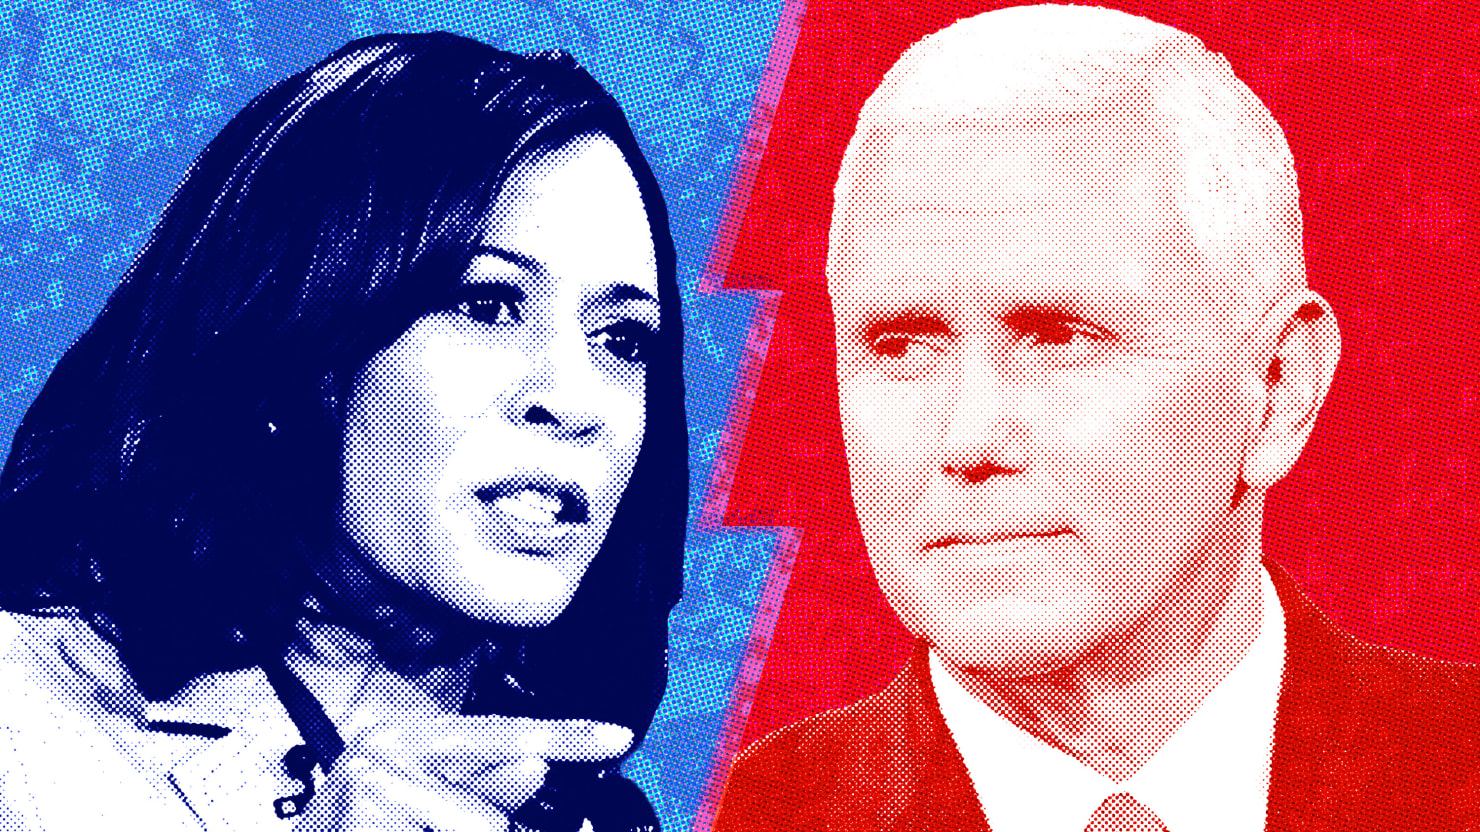 Mike Pence vs. Kamala Harris: Who Makes the Stronger Case for VP?